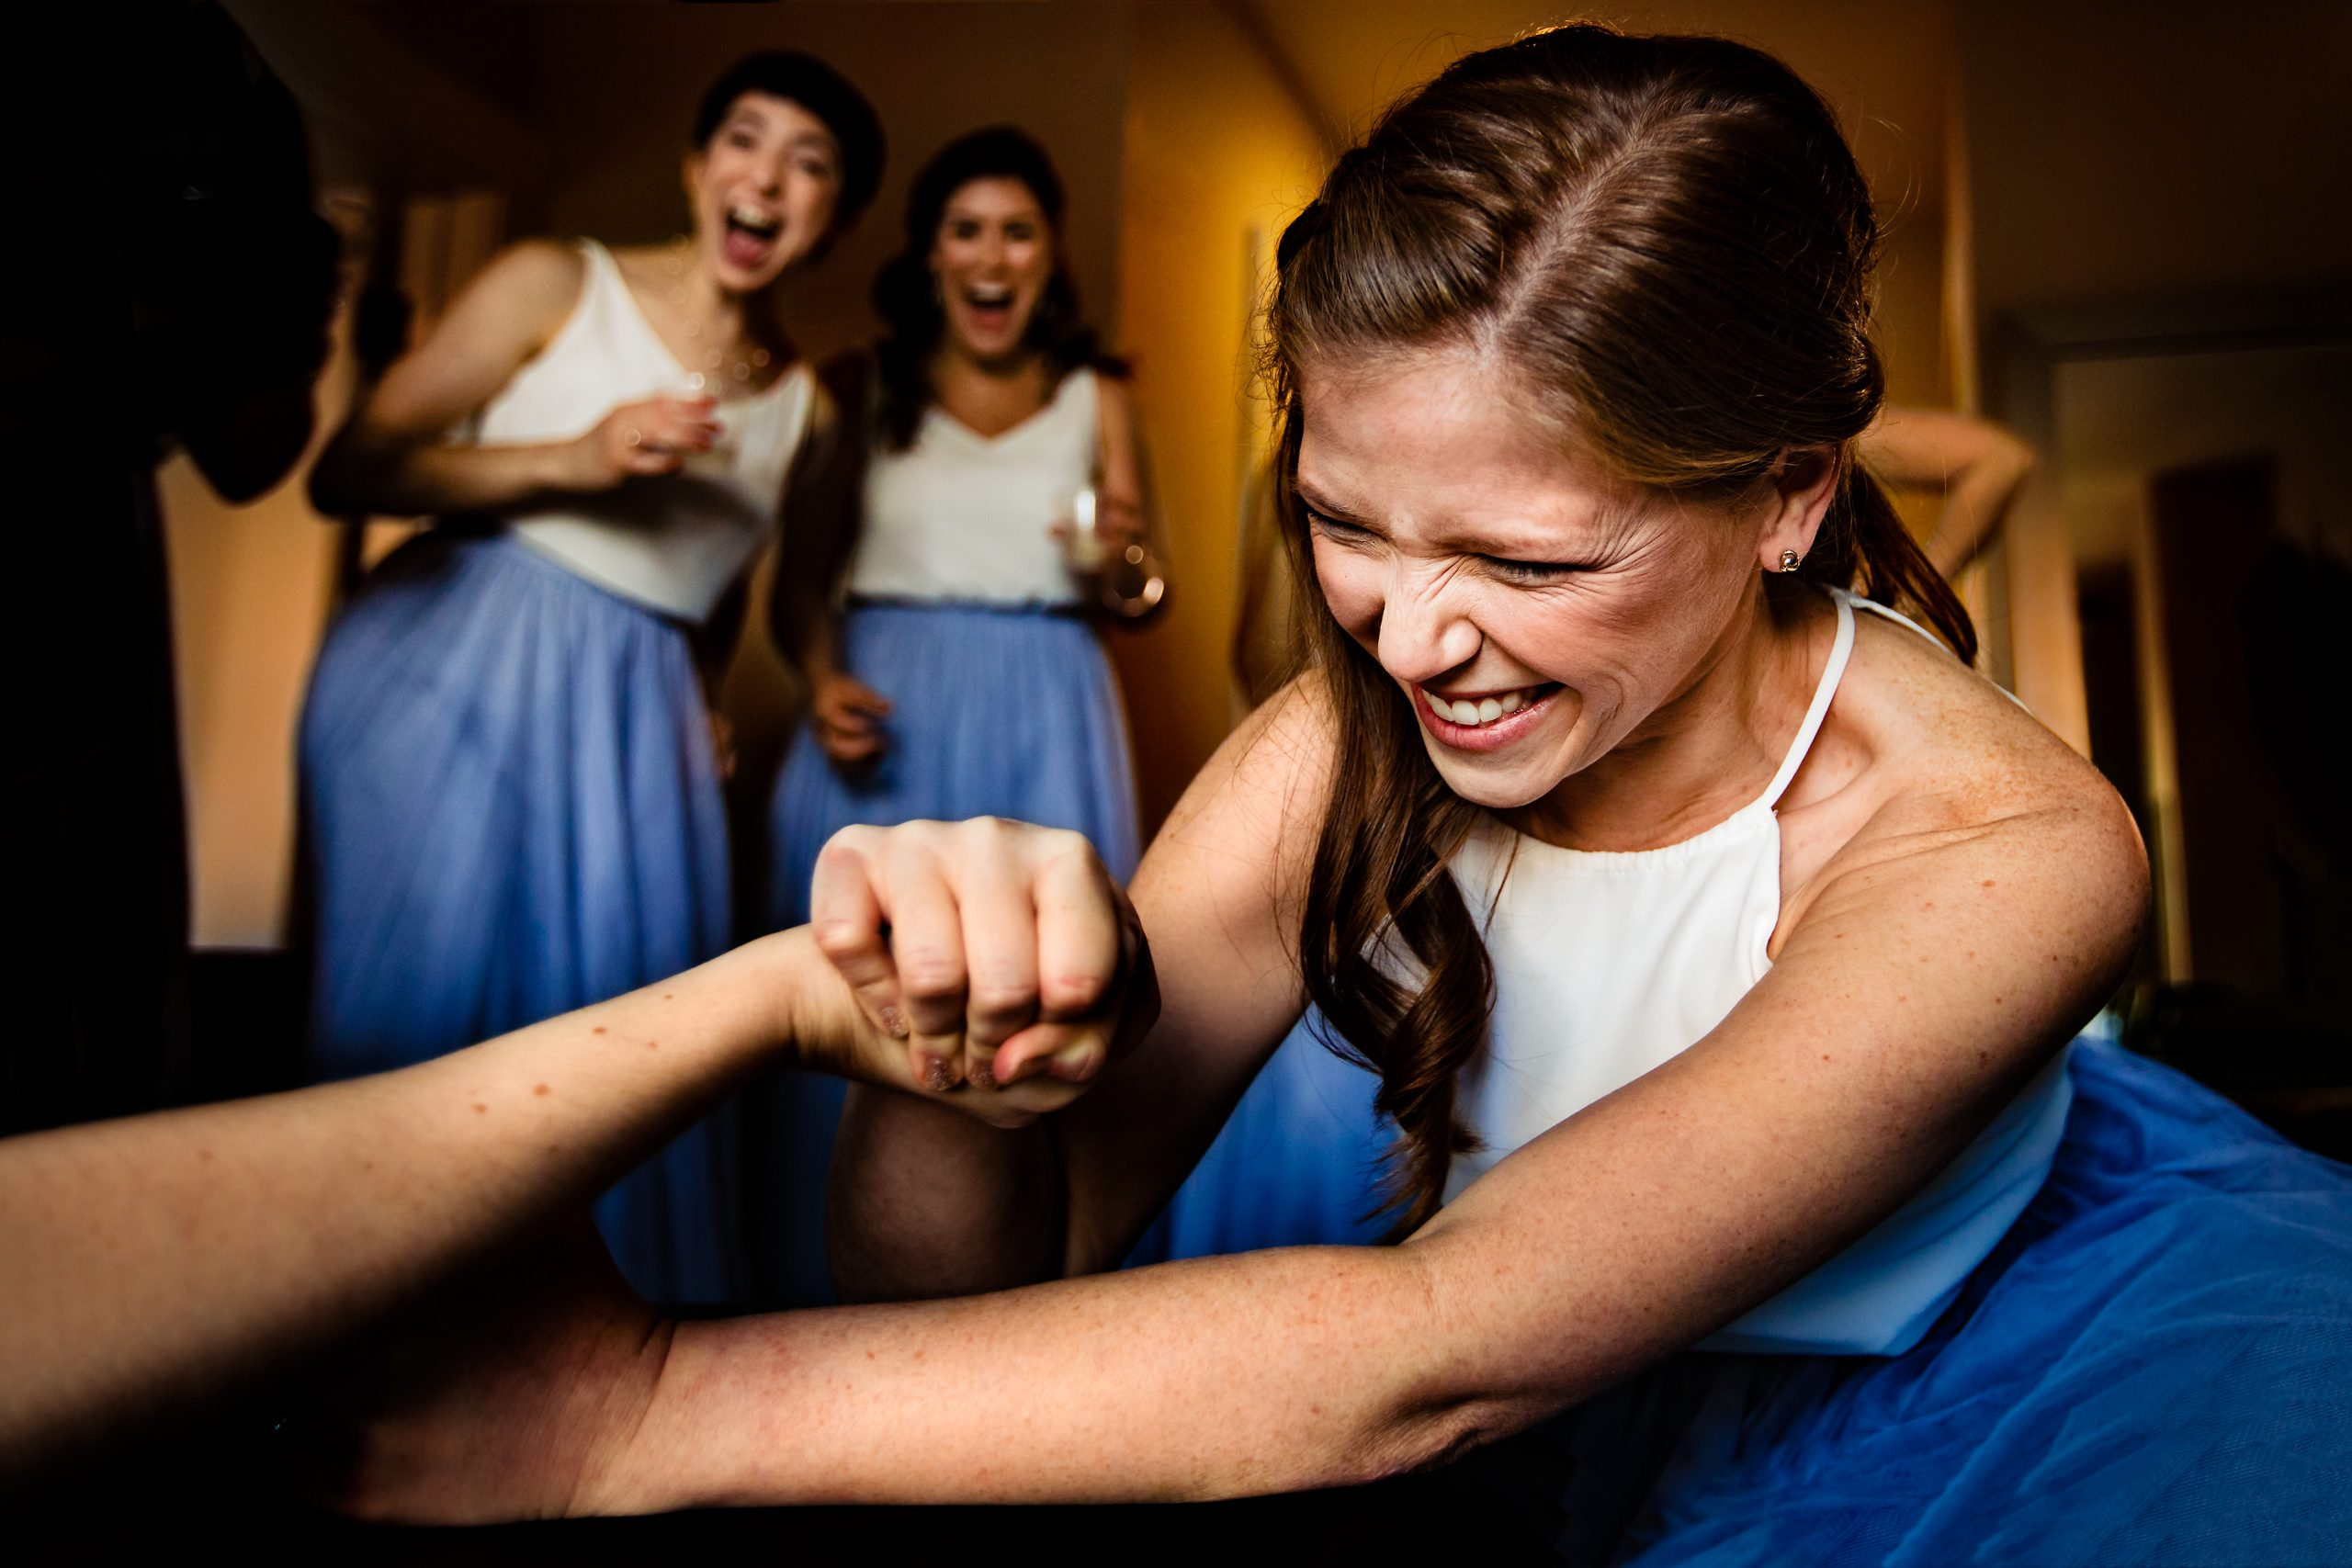 Bridesmaid struggles to win arm wrestle as other bridesmaids cheer